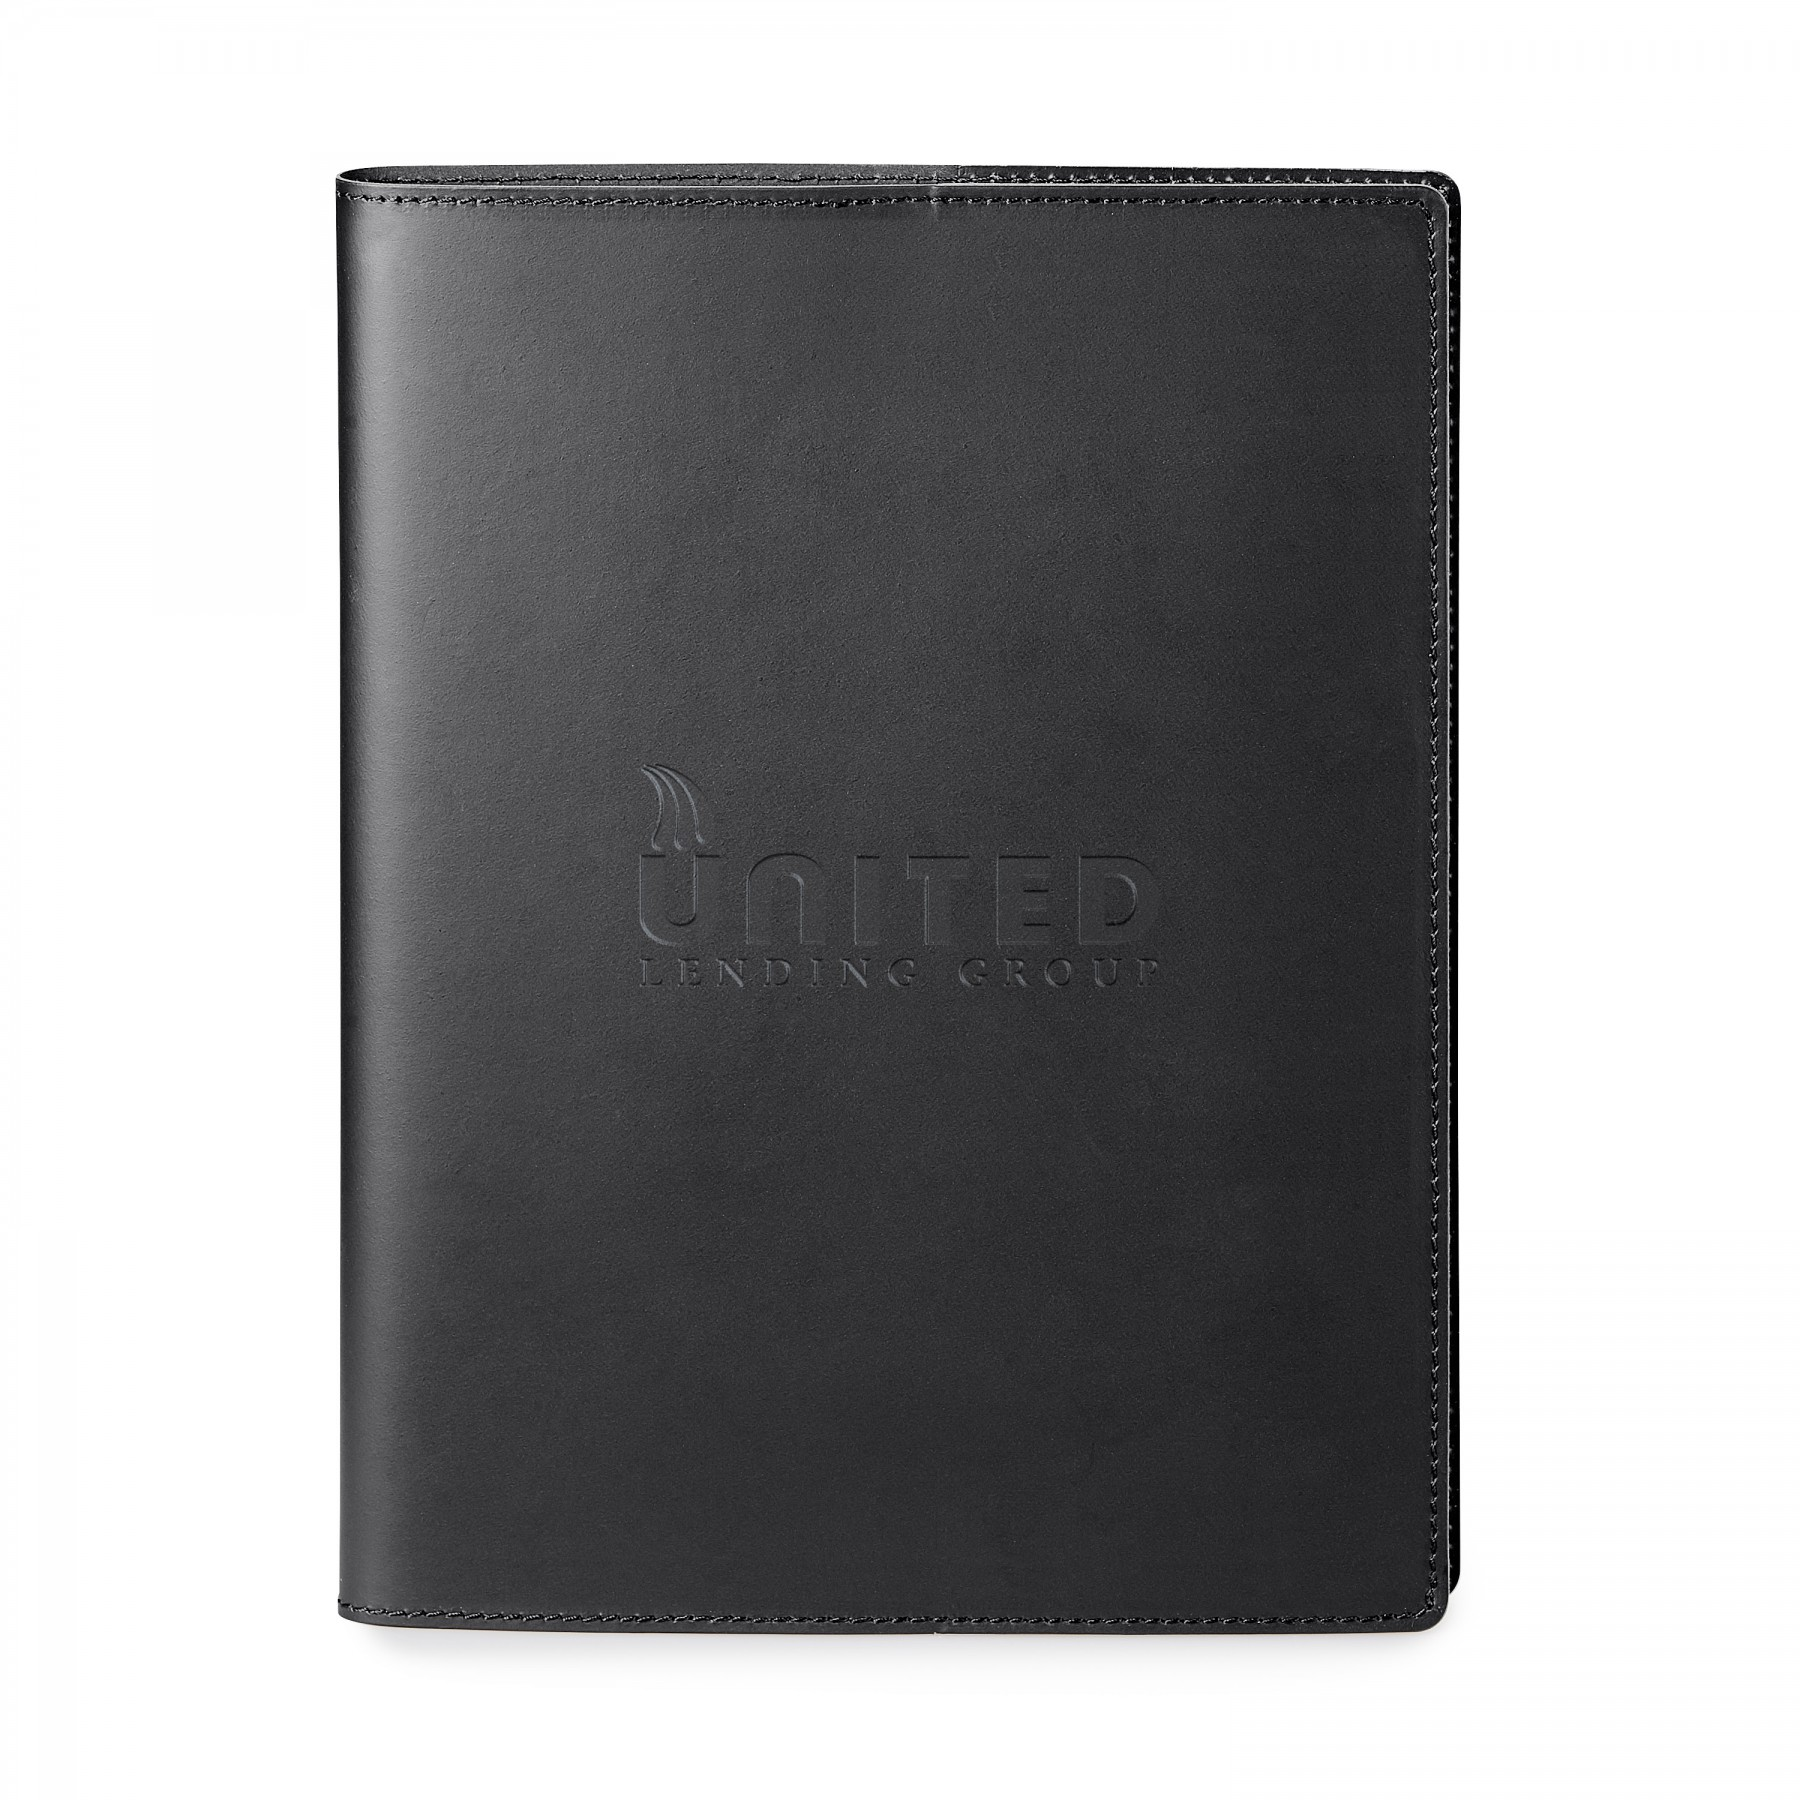 Giuseppe Di Natale Refillable Leather Journal - Debossed Imprint (ST603)